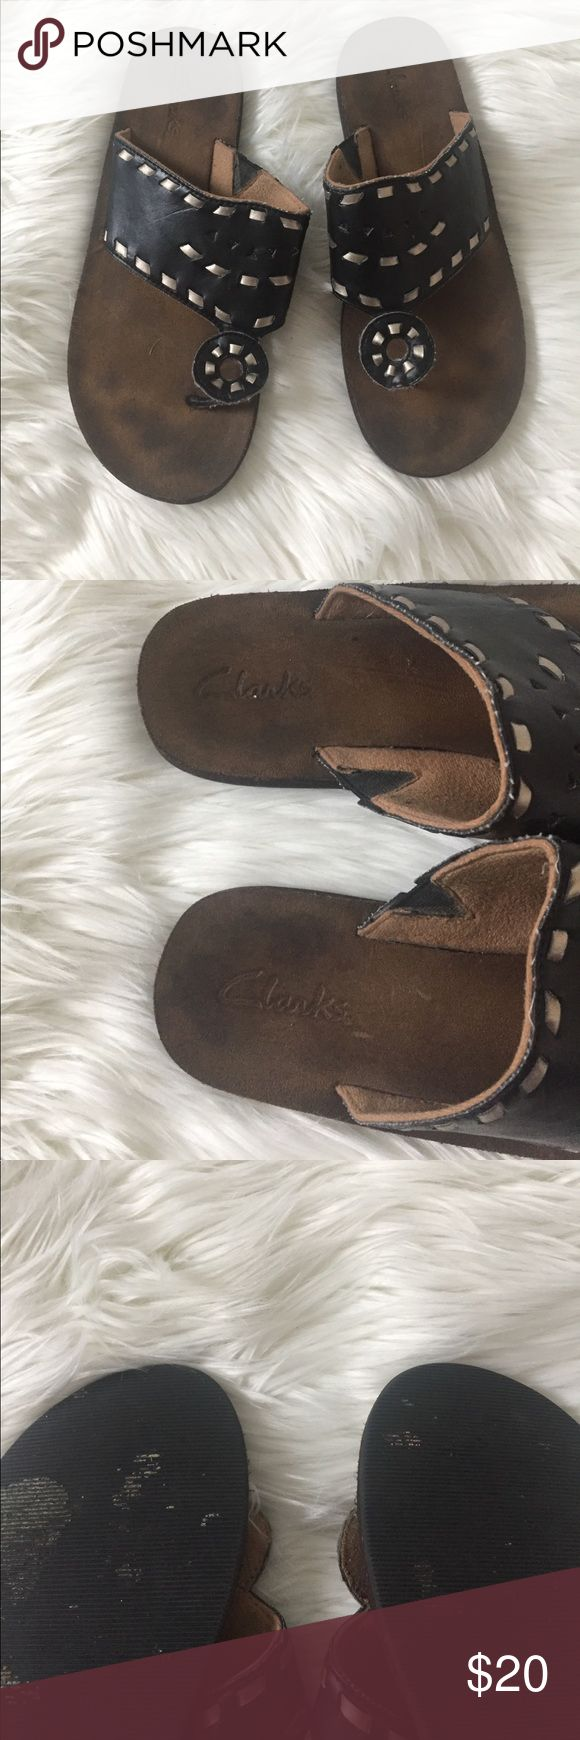 women's clarks sandals size 8 size 8 good condition women's clarks. they have some wear as documented but still in great condition. bundle with other items for an even deeper discount. Clarks Shoes Sandals